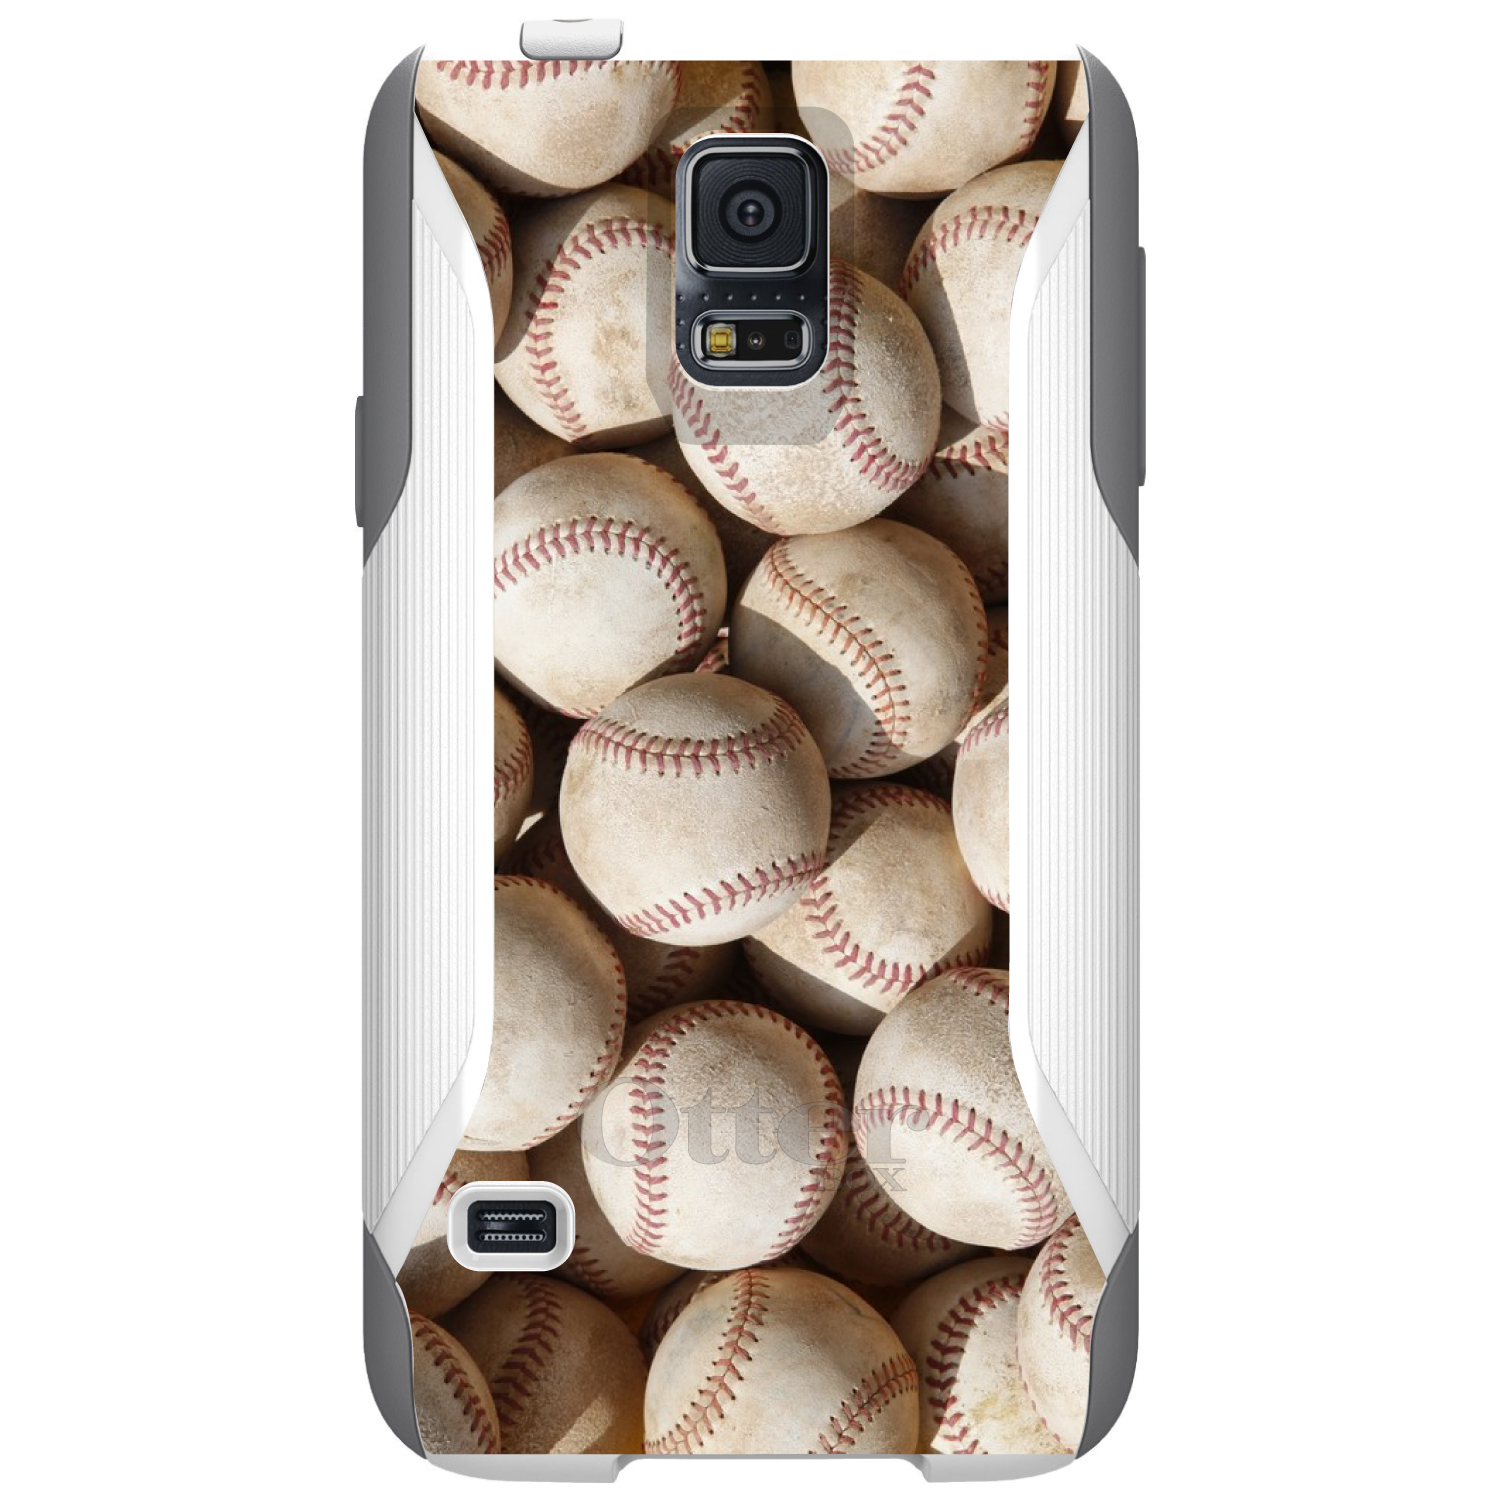 DistinctInk™ Custom White OtterBox Commuter Series Case for Samsung Galaxy S5 - Old Baseballs